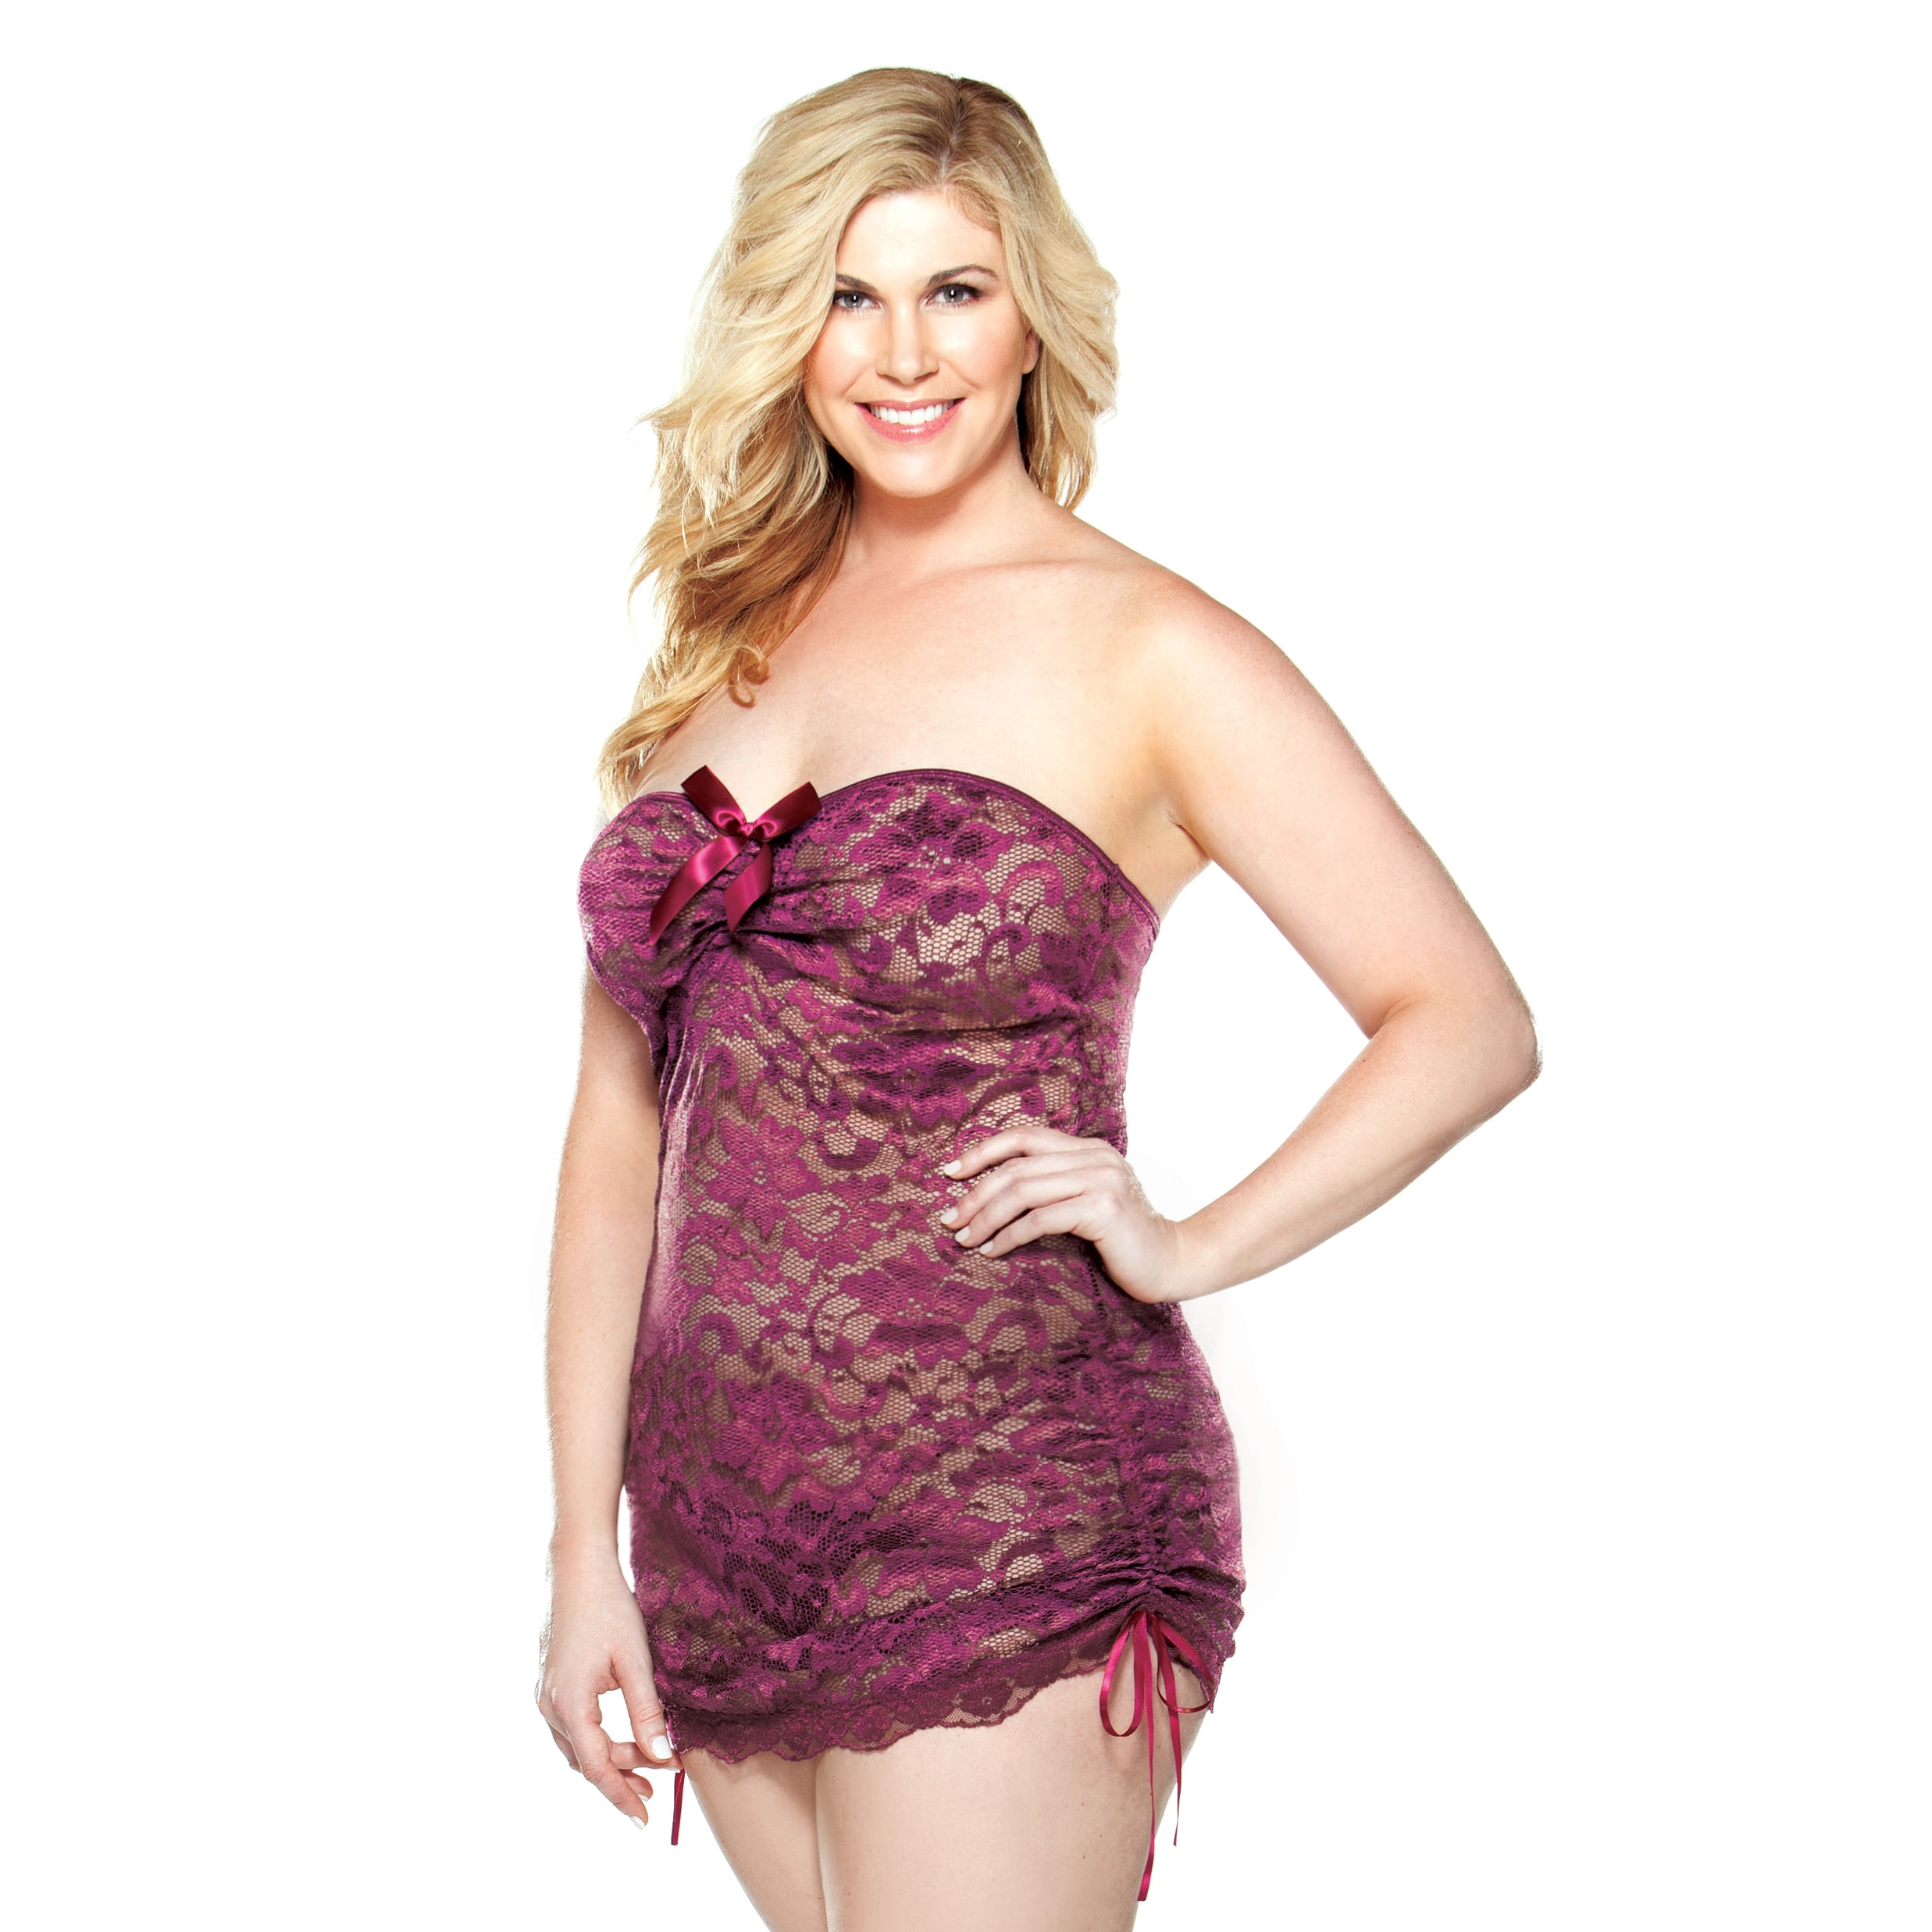 4066f3fe5b0 Shop Fantasy Lingerie Women s Plus-size Eggplant Lace Strapless Mini Dress  and Matching G-String - Free Shipping On Orders Over  45 - Overstock -  9423939